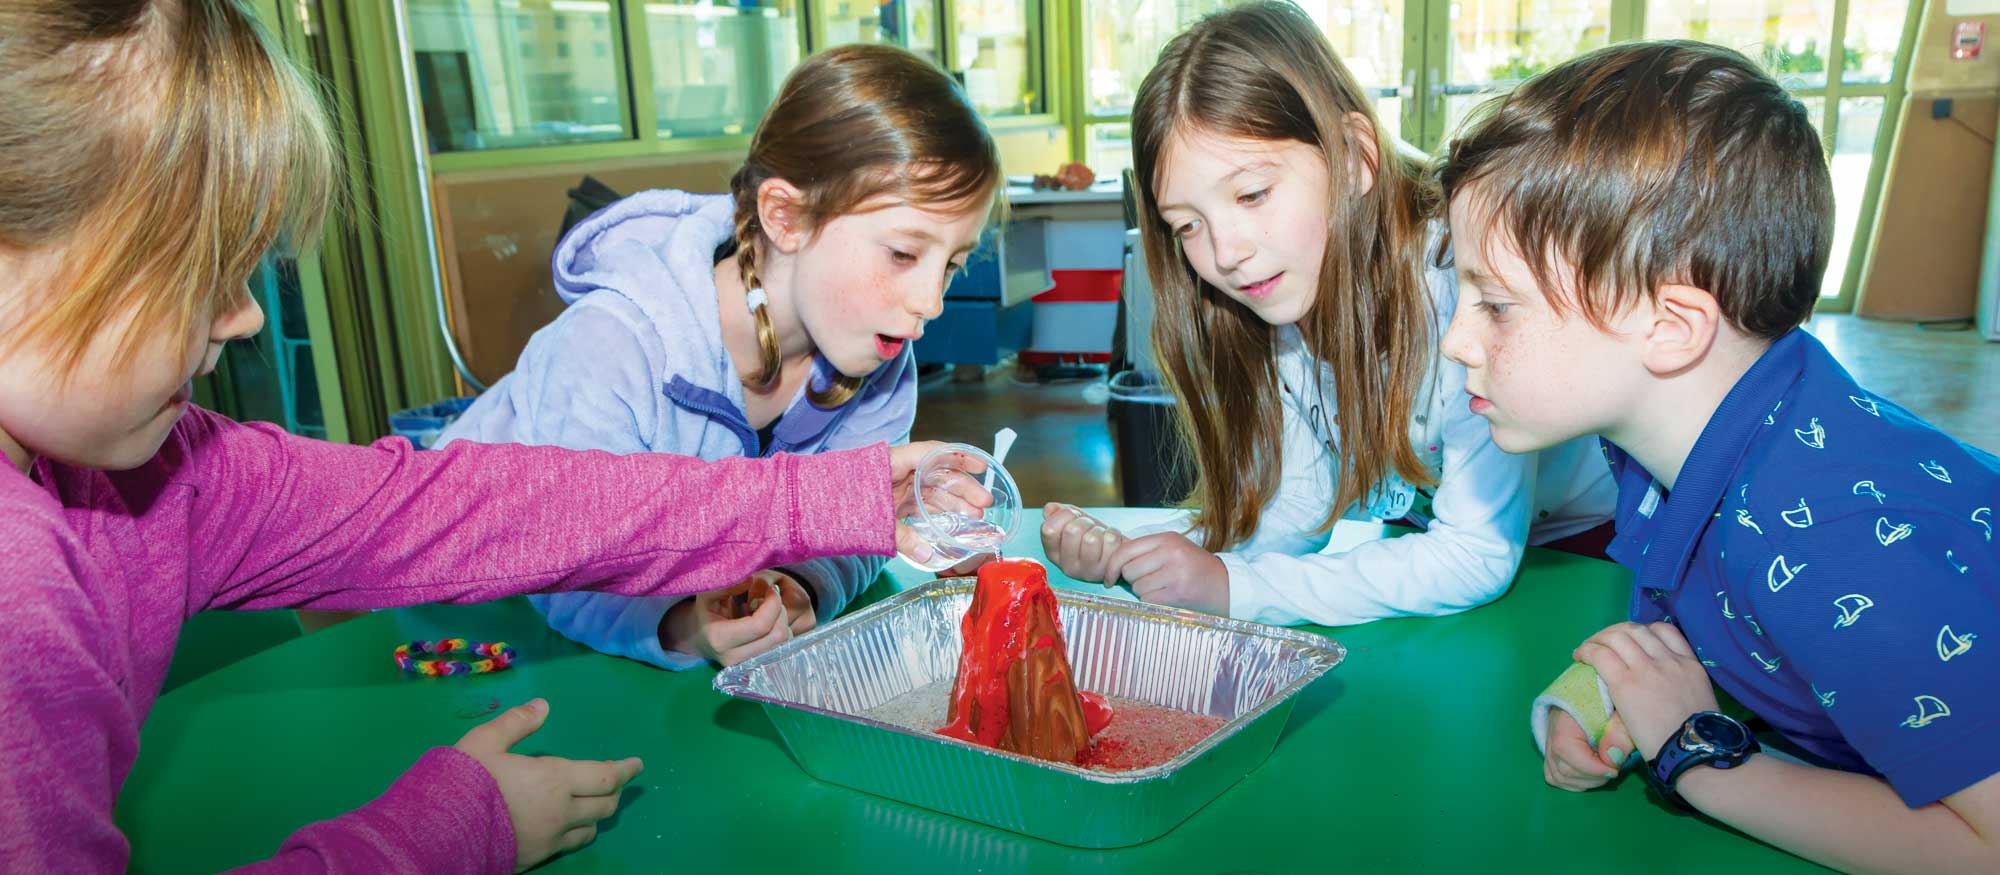 Camp kids work on a science experiment project